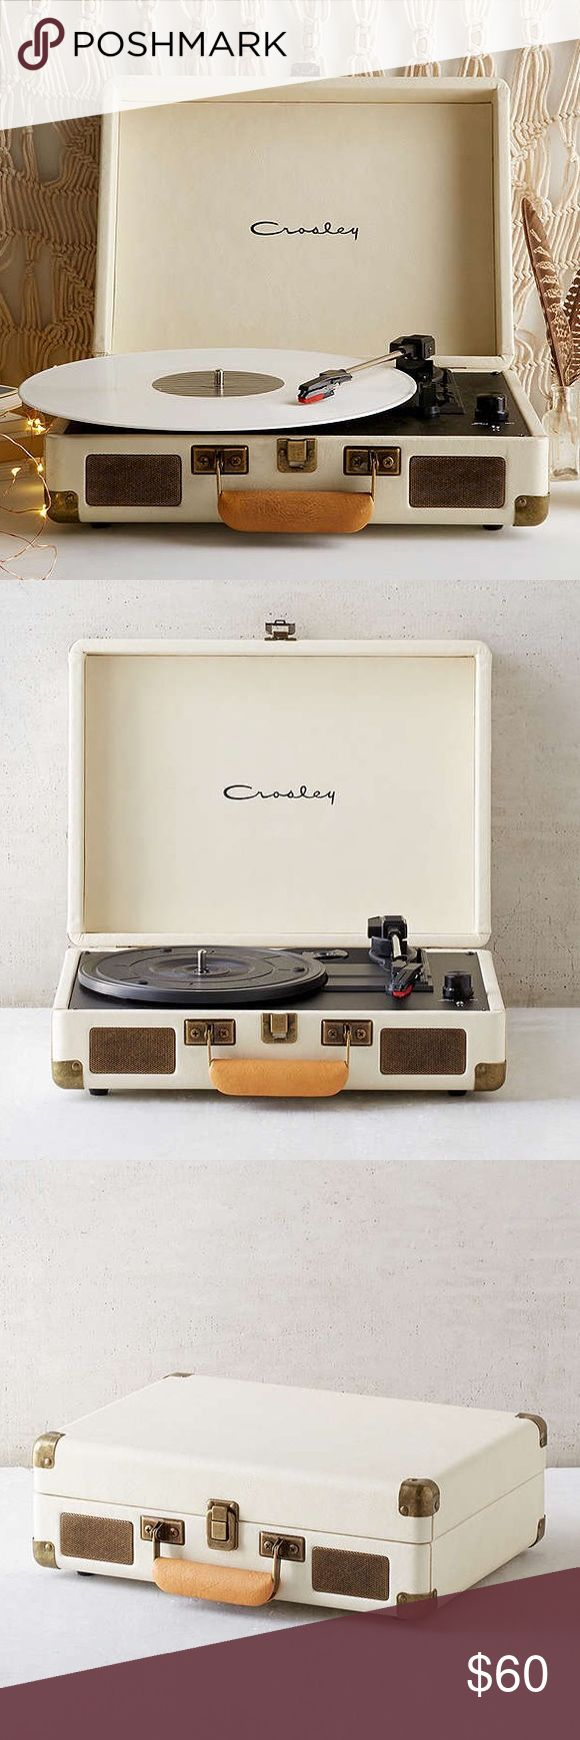 Crosley X UO Cruiser Cream Briefcase Record Player Crosley Record Player. Last photo contains actual product. No box, Fully working, purchased from Urban Outfitters. Works perfectly and adds an adorable addition to any decor, even when not in use. Only getting rid of it now so I can some of the money back in order to get the gold wireless edition they now sell. Comment any questions you have and I'll reply as soon as possible! Flexible on price on most items. Items purchased on or right…